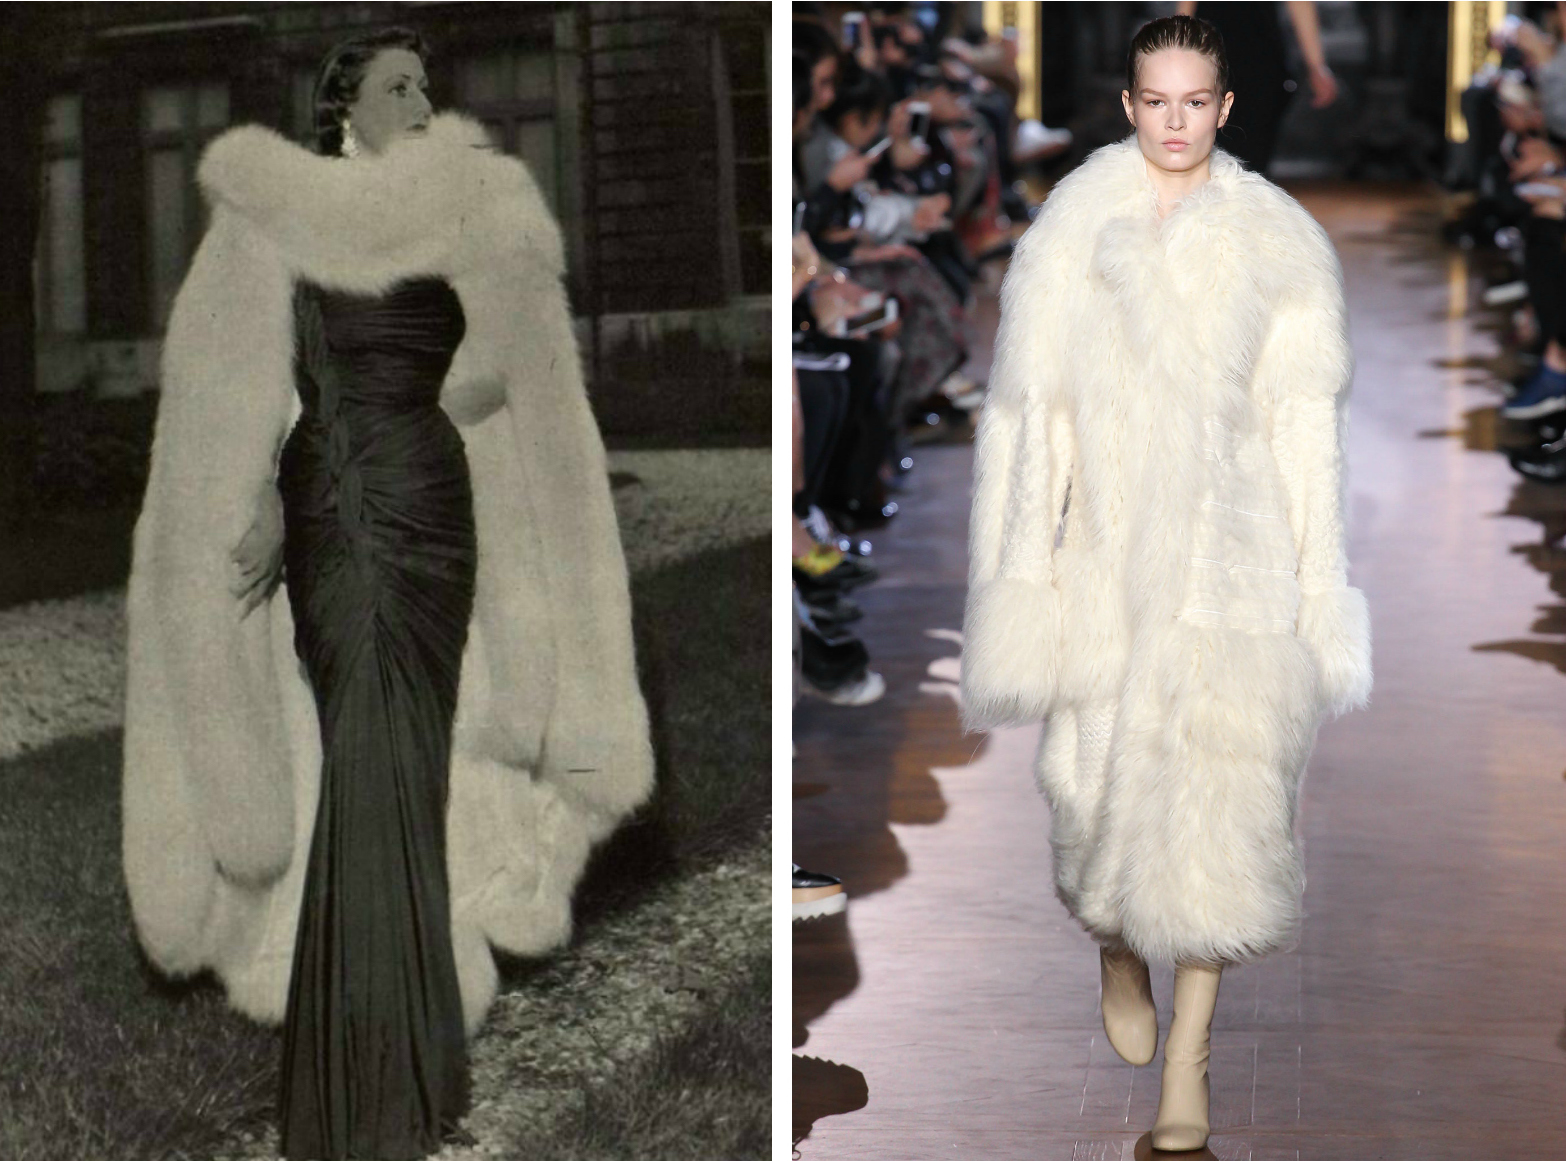 From left to right: Maggy Rouff in 1949 wearing a fur cape, and the Stella McCartney collection at Paris Fashion Week, Fall 2015.